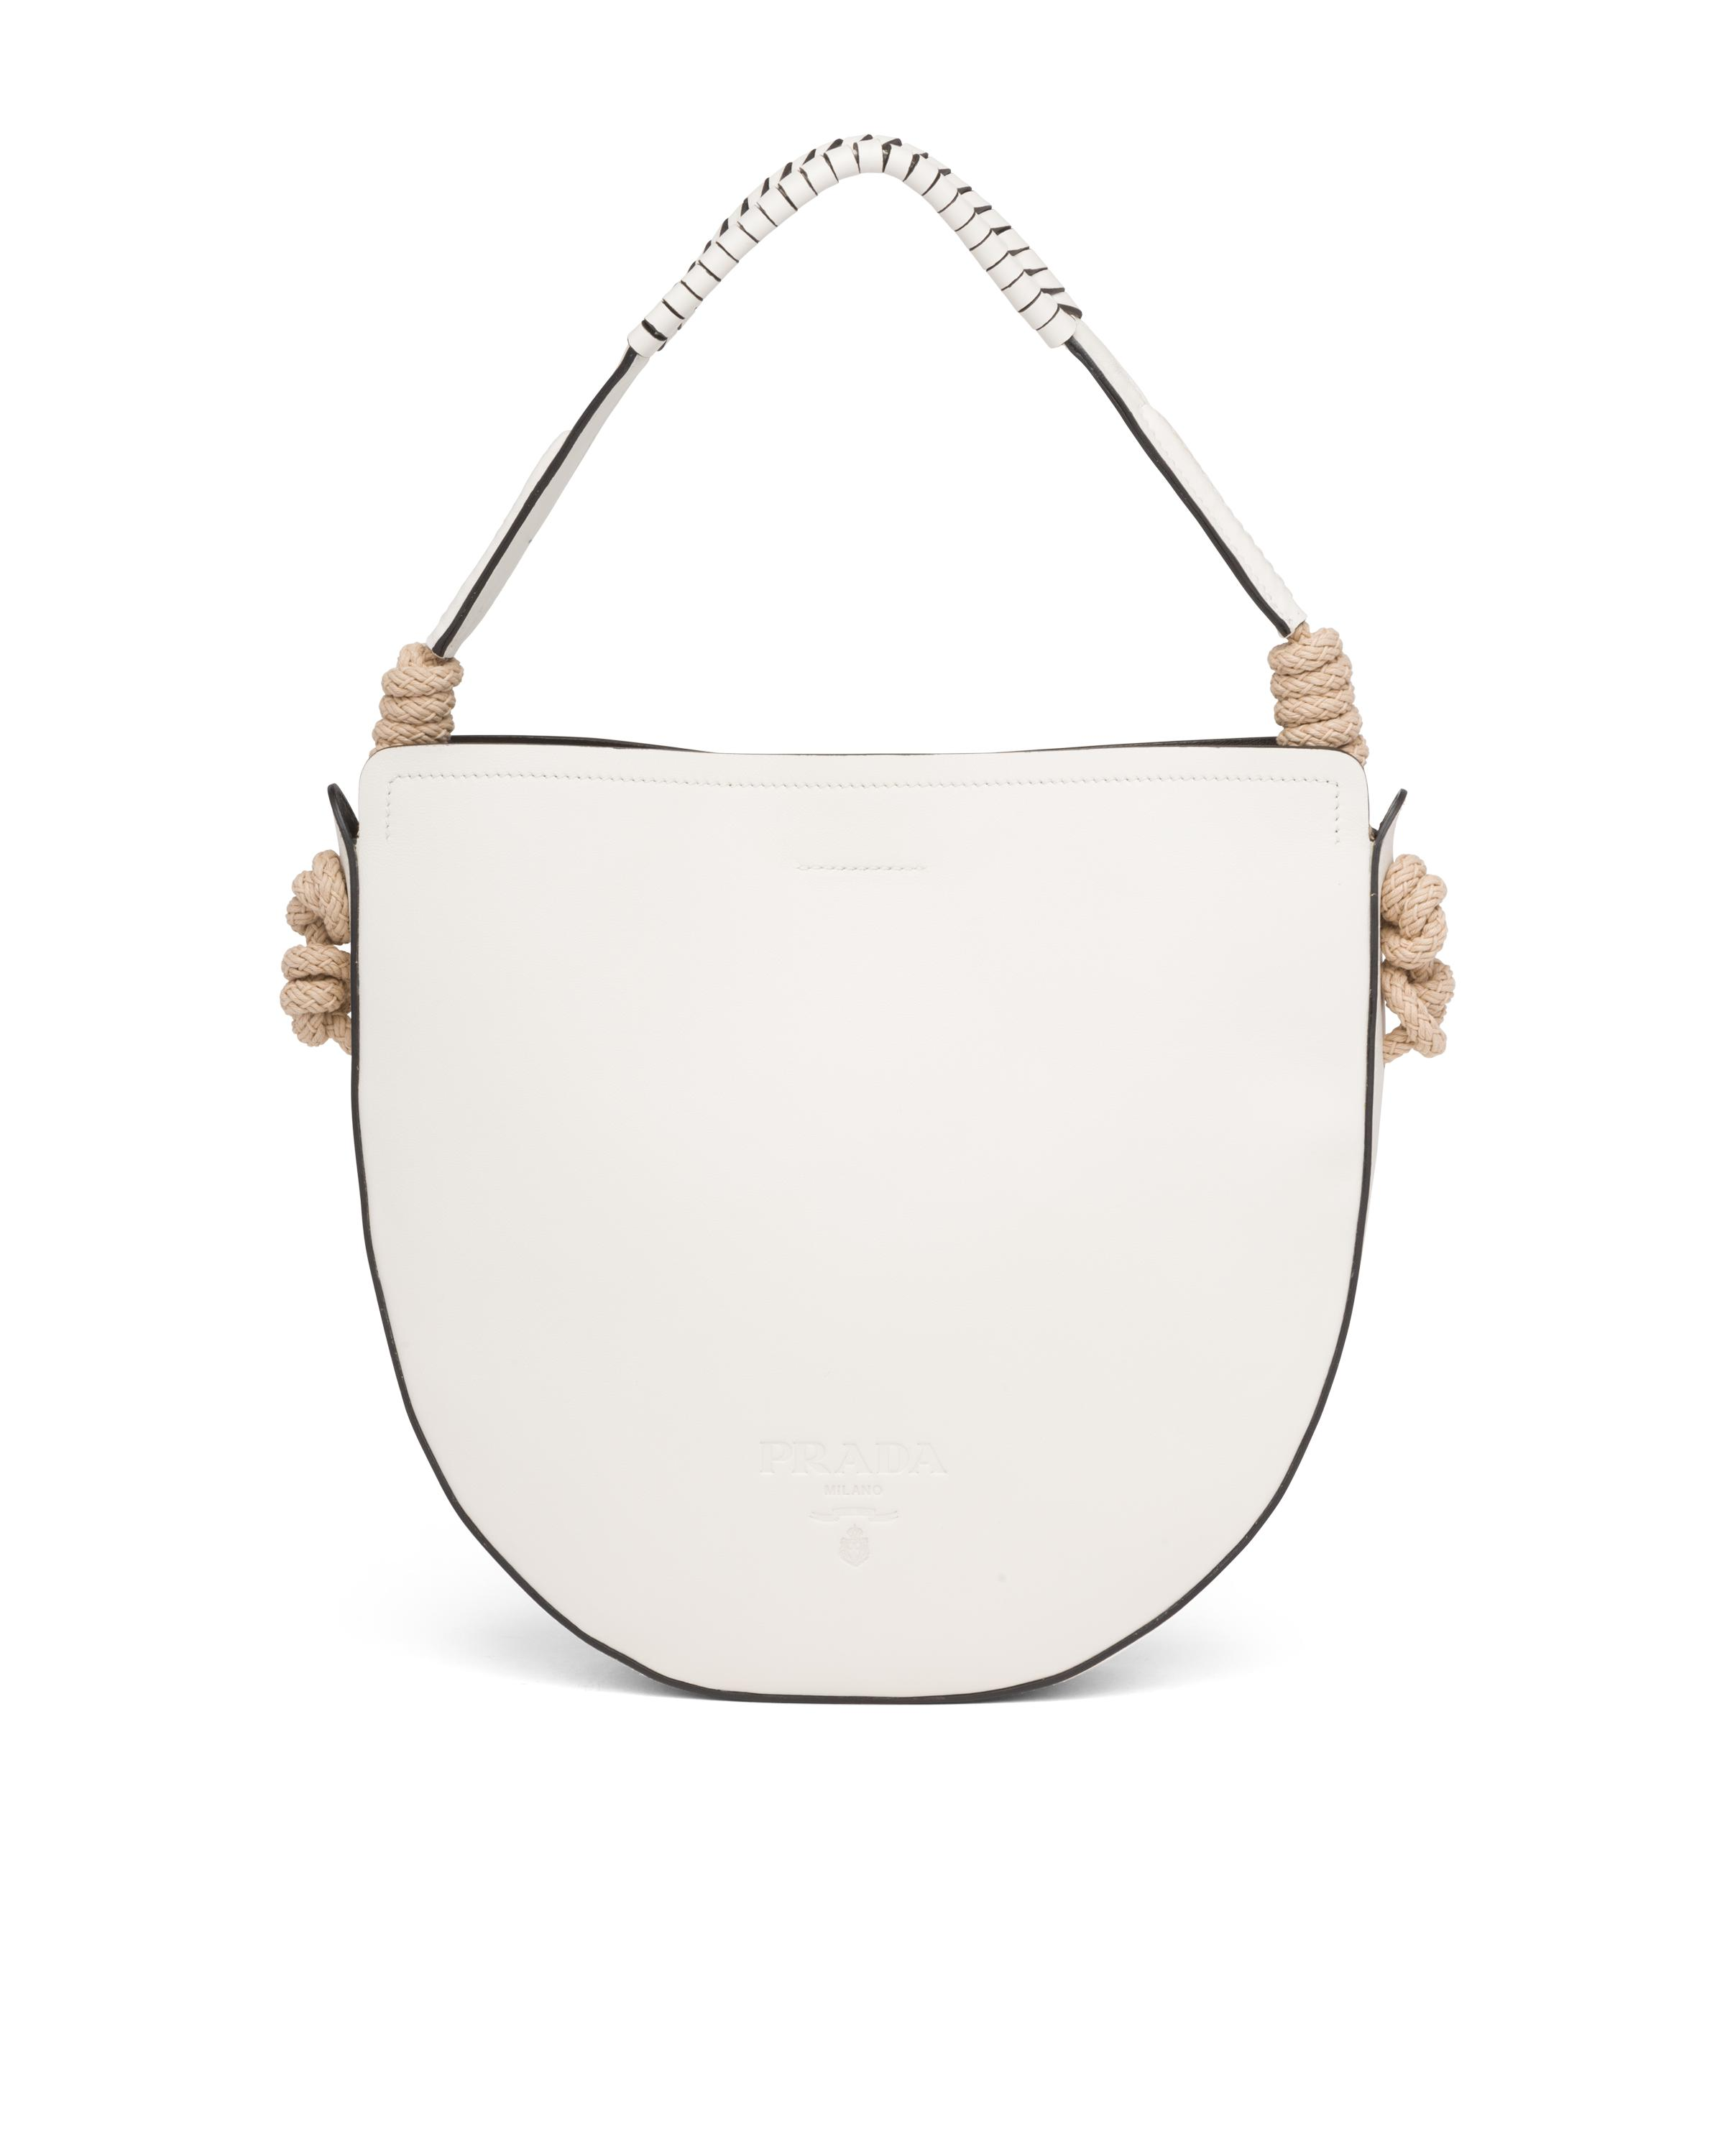 Leather Bag With Cord Details Women White/black 7